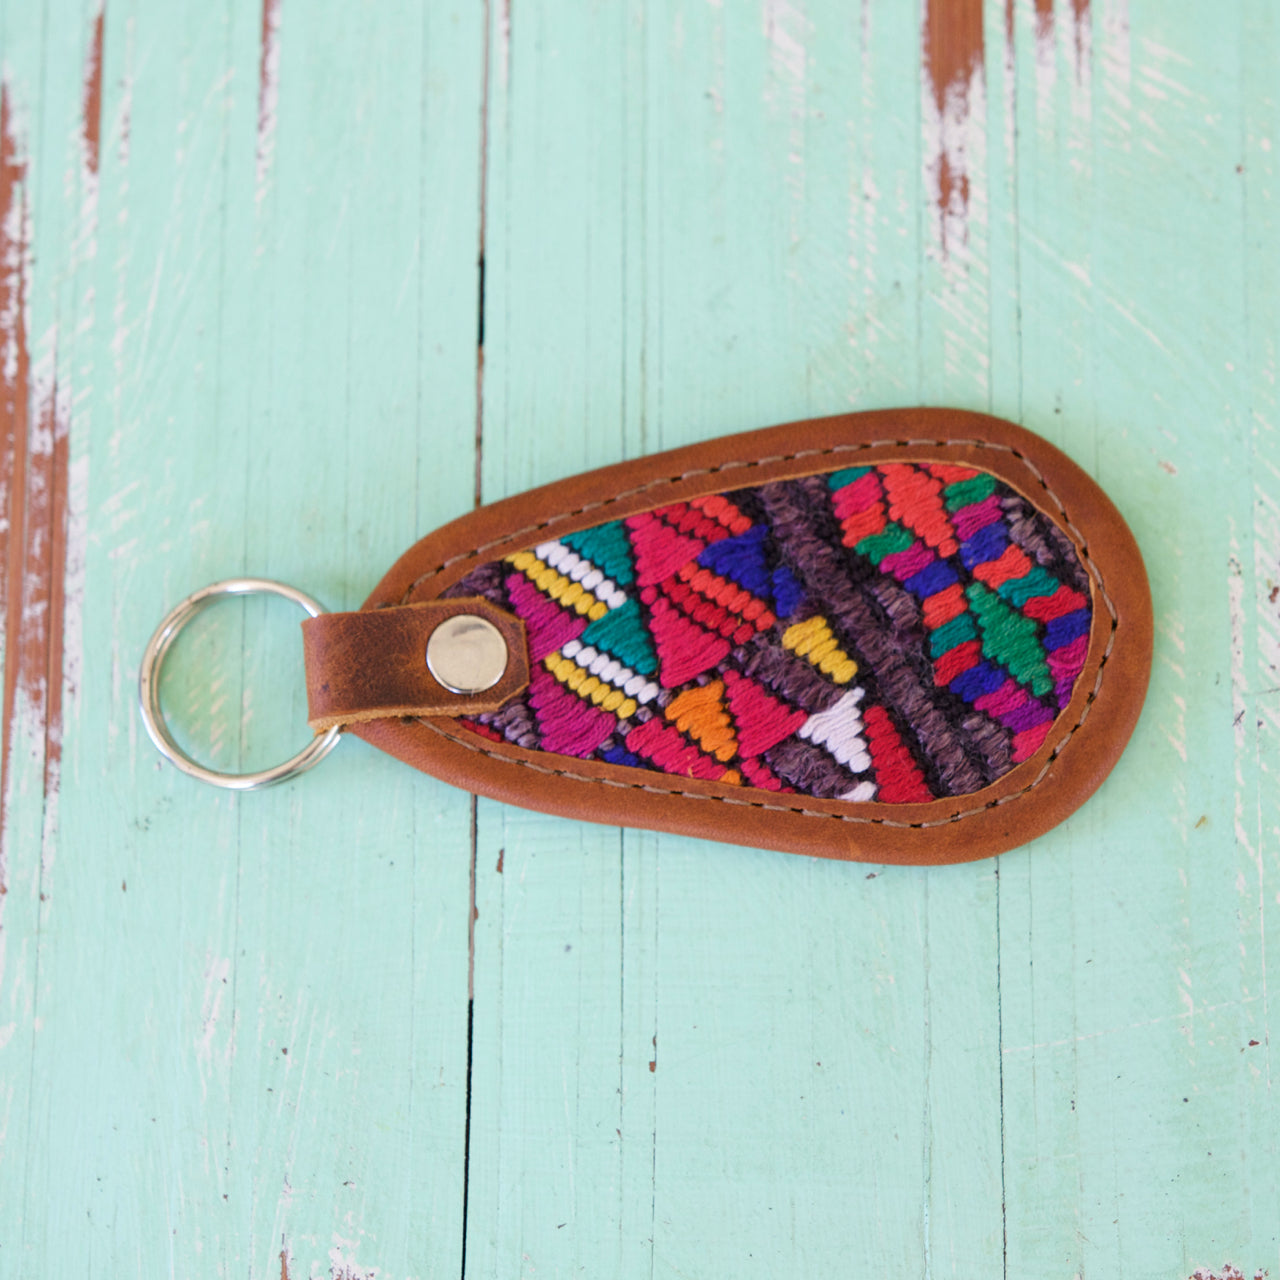 Cielo Key Ring 39  Key Ring Rainbow - Cielo Collective handmade Mexico Guatemala